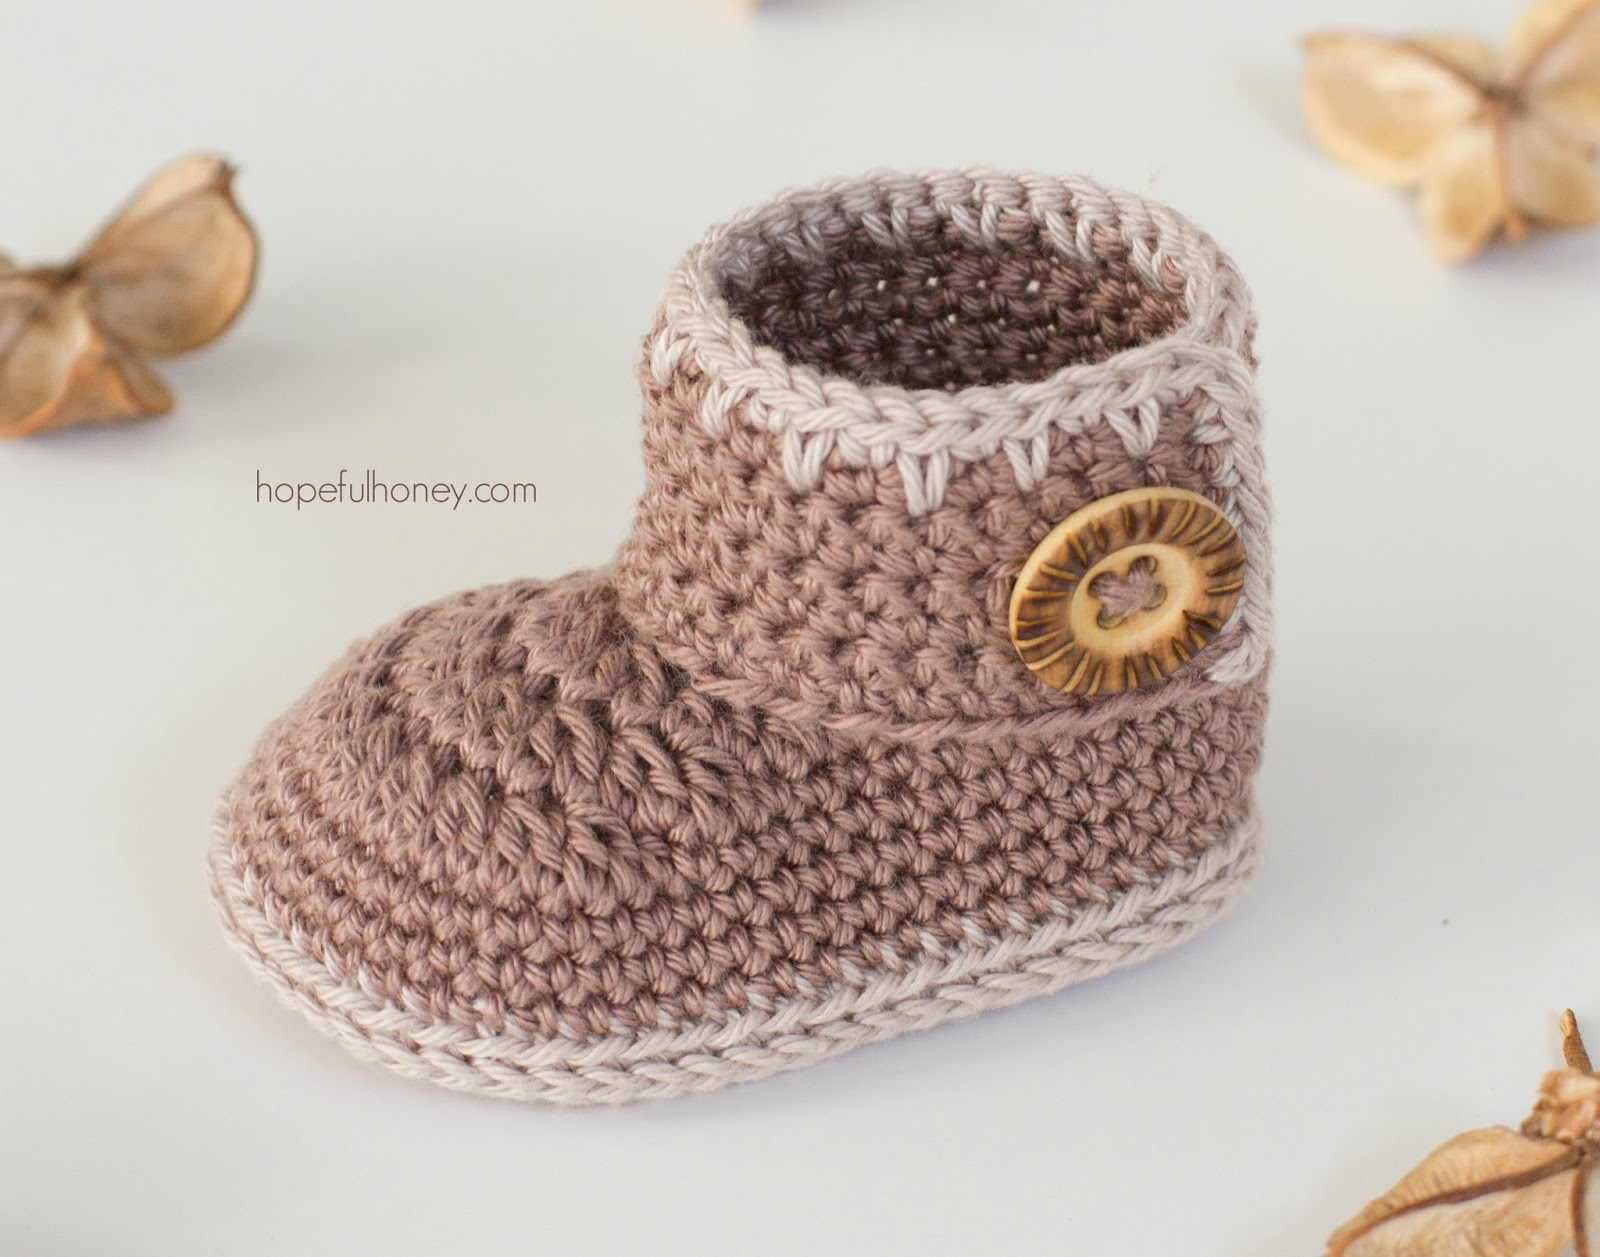 Crochet Baby Ankle Booties Free Pattern : Cocoa Baby Ankle Booties - Free Crochet Pattern Hopeful ...